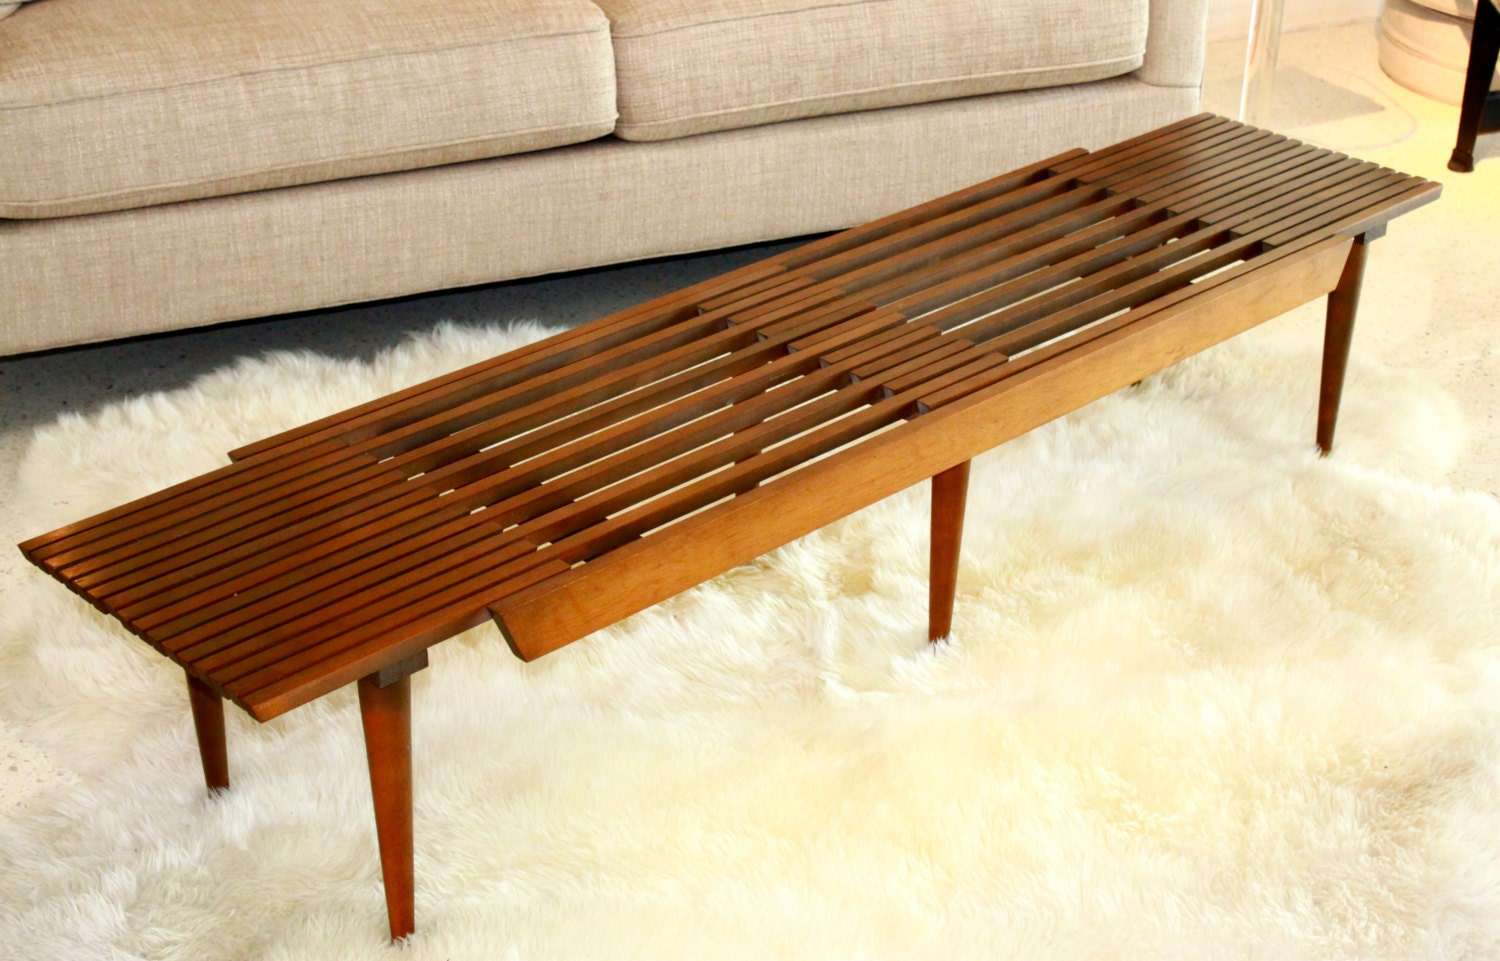 Vintage Expandable Coffee Table By Amidcenturymindset On Etsy